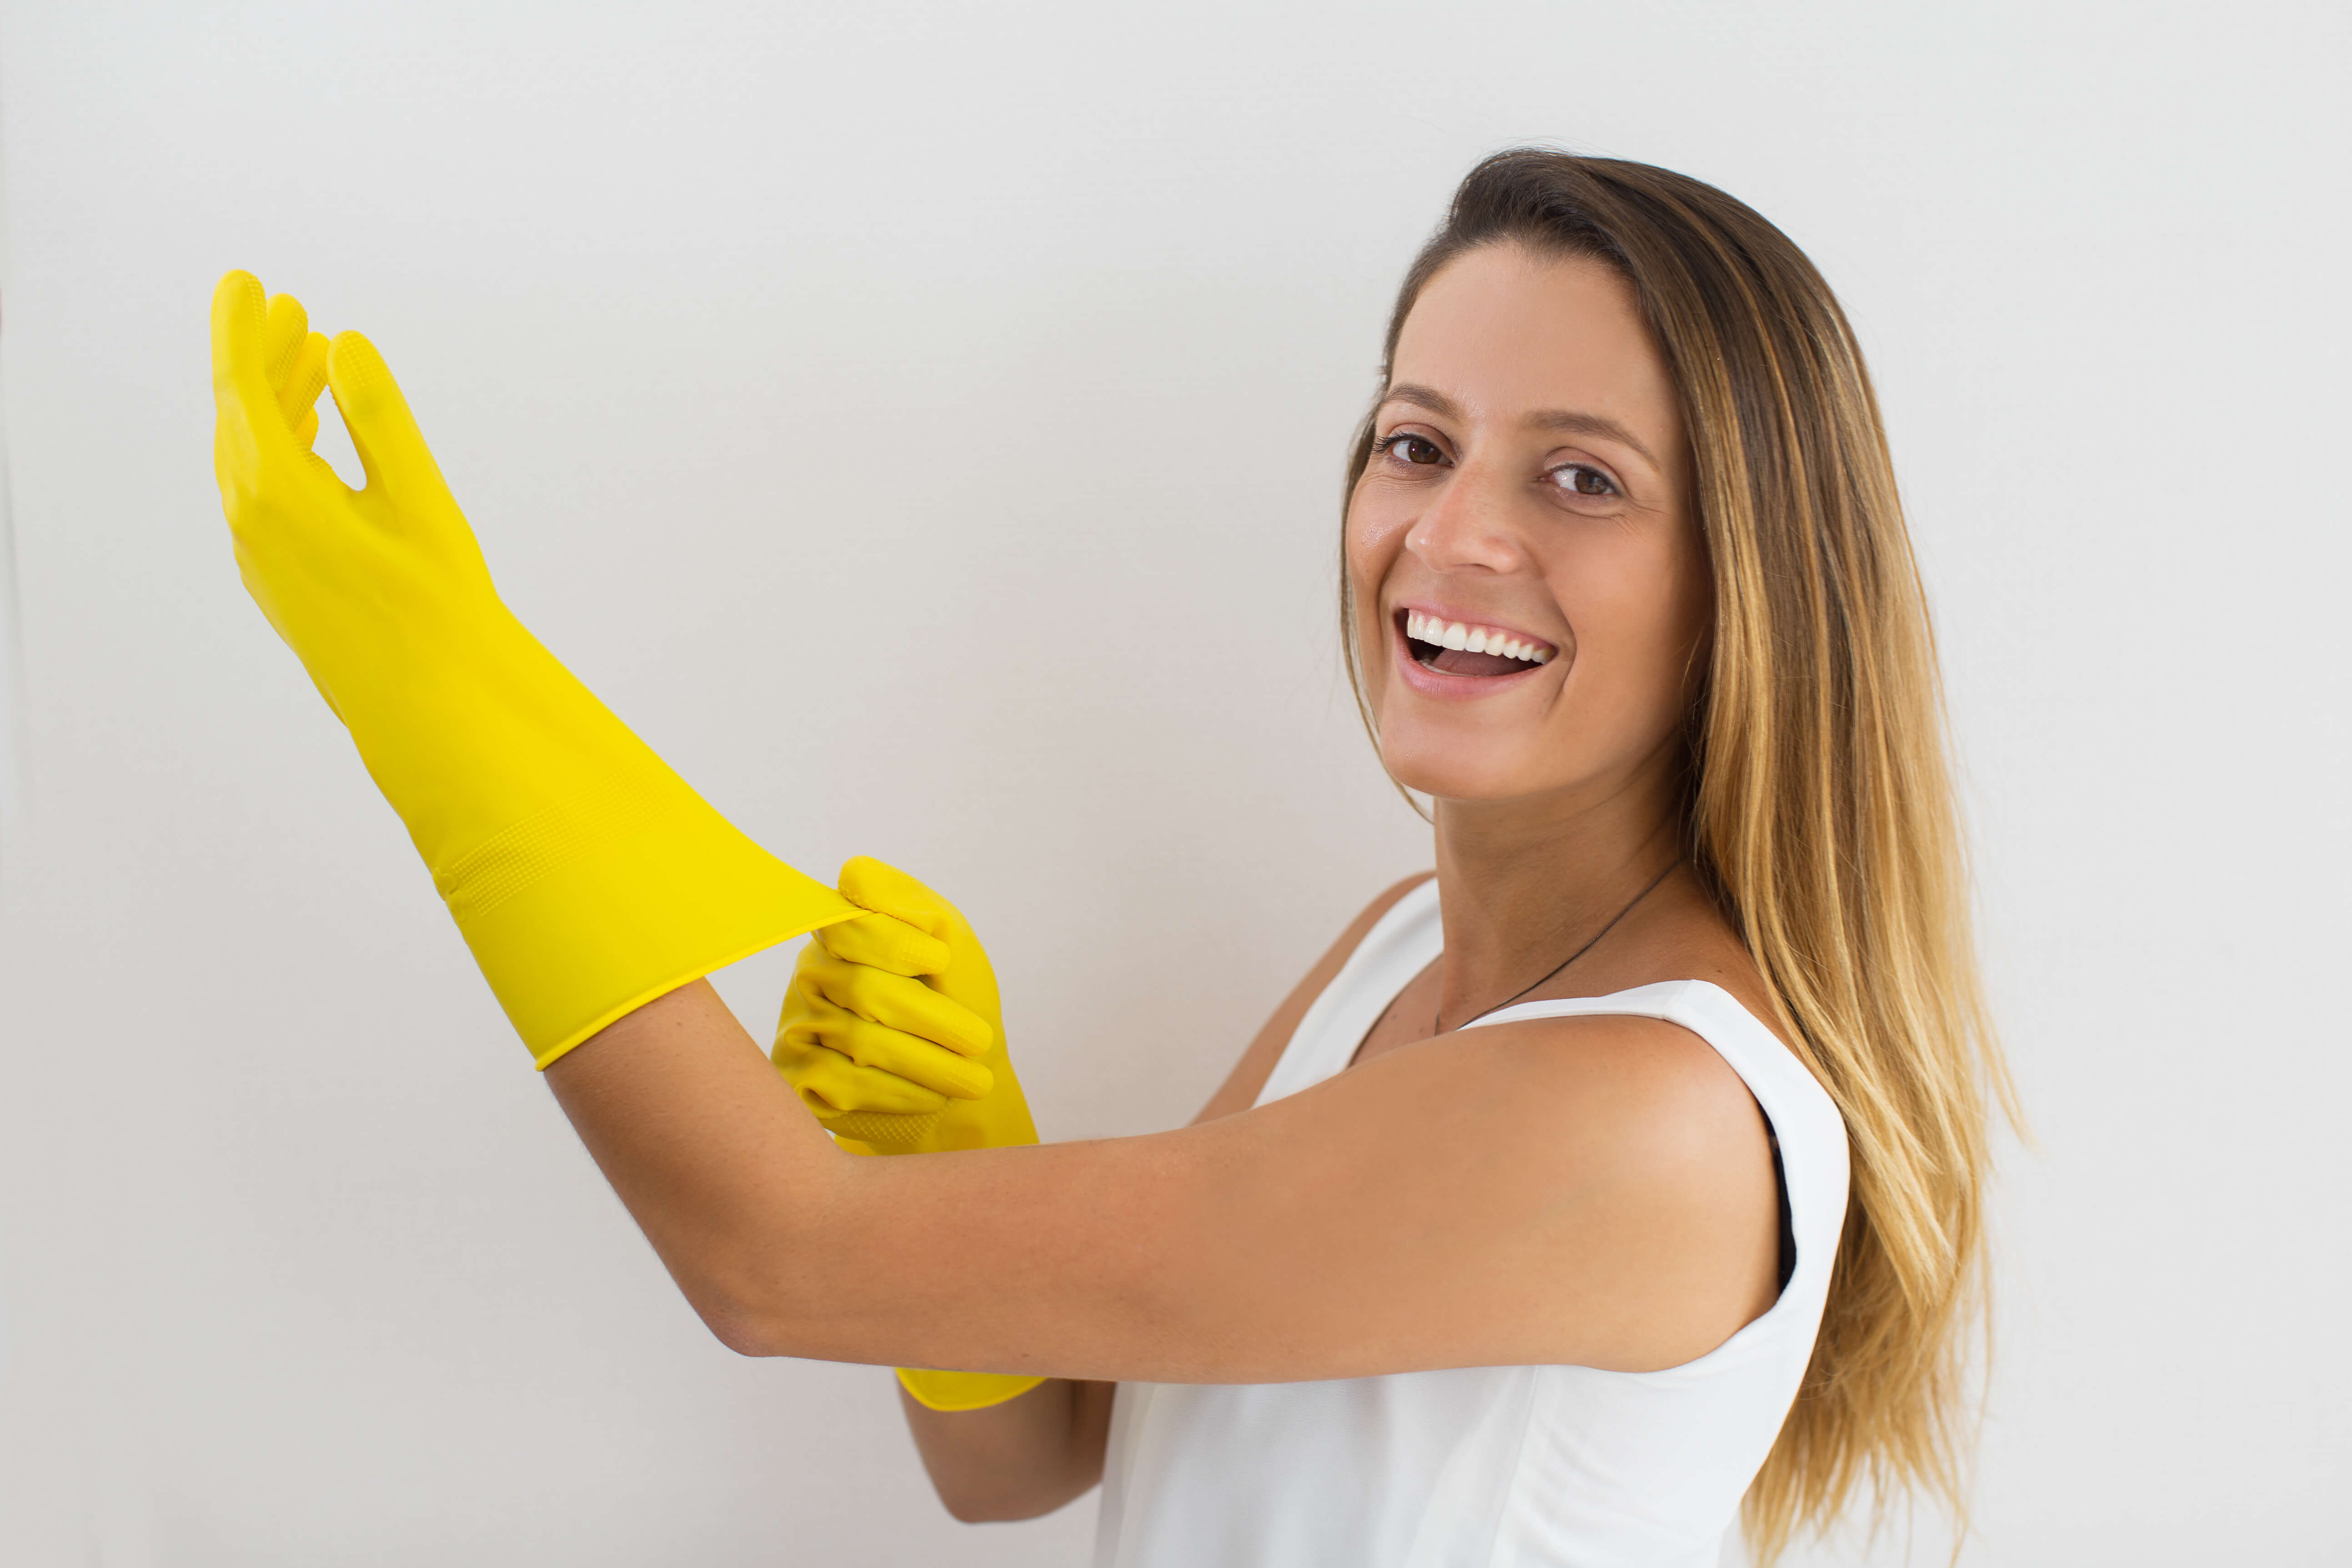 Excited young housewife putting rubber glove on hand and looking at camera. Happy woman loving cleaning. Cleaning at home concept